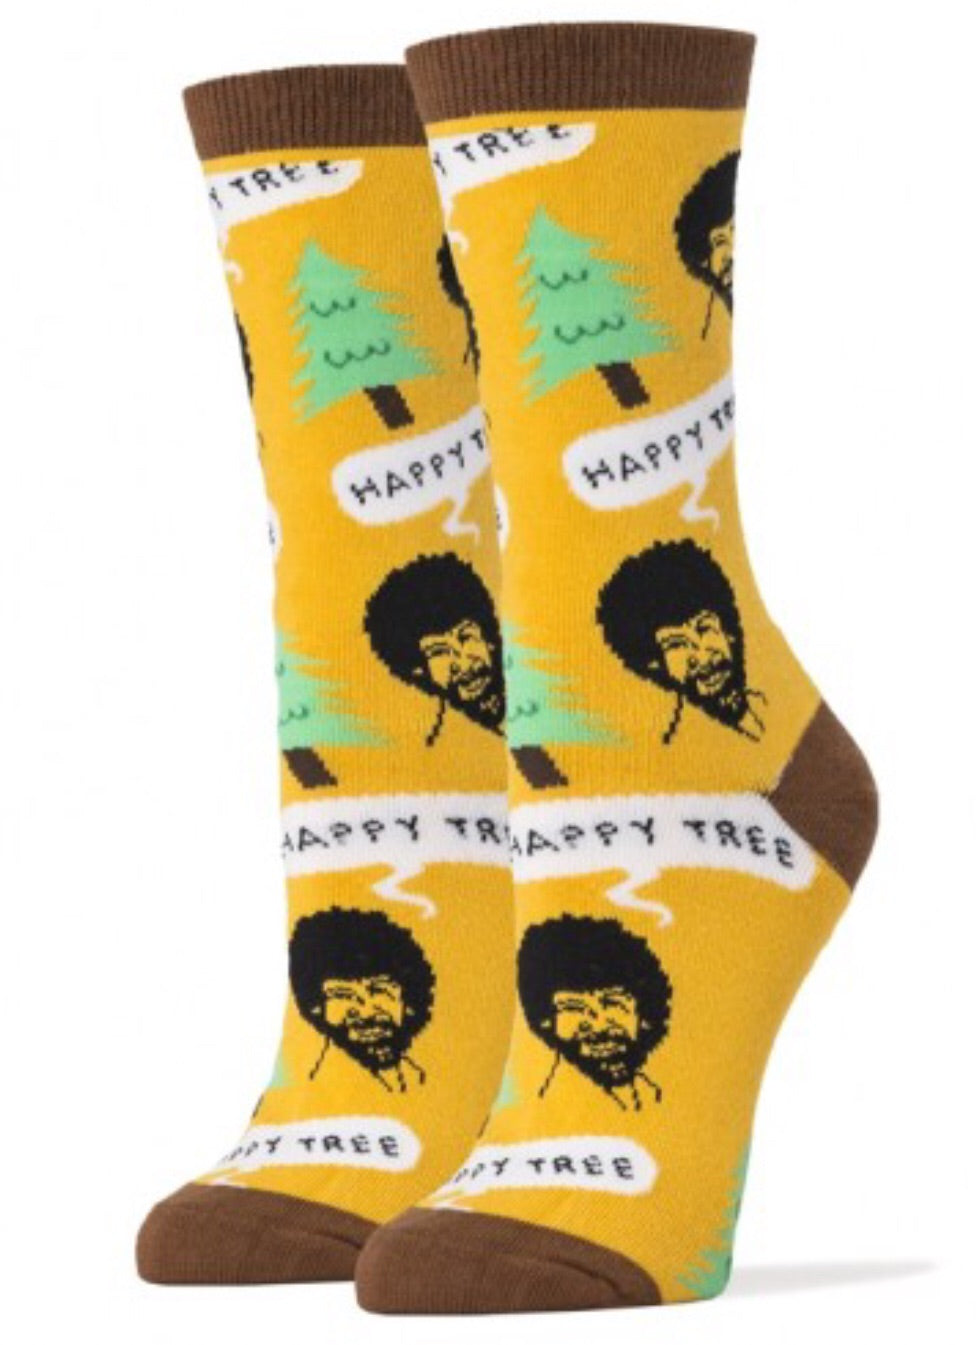 Bob Ross - Happy Trees